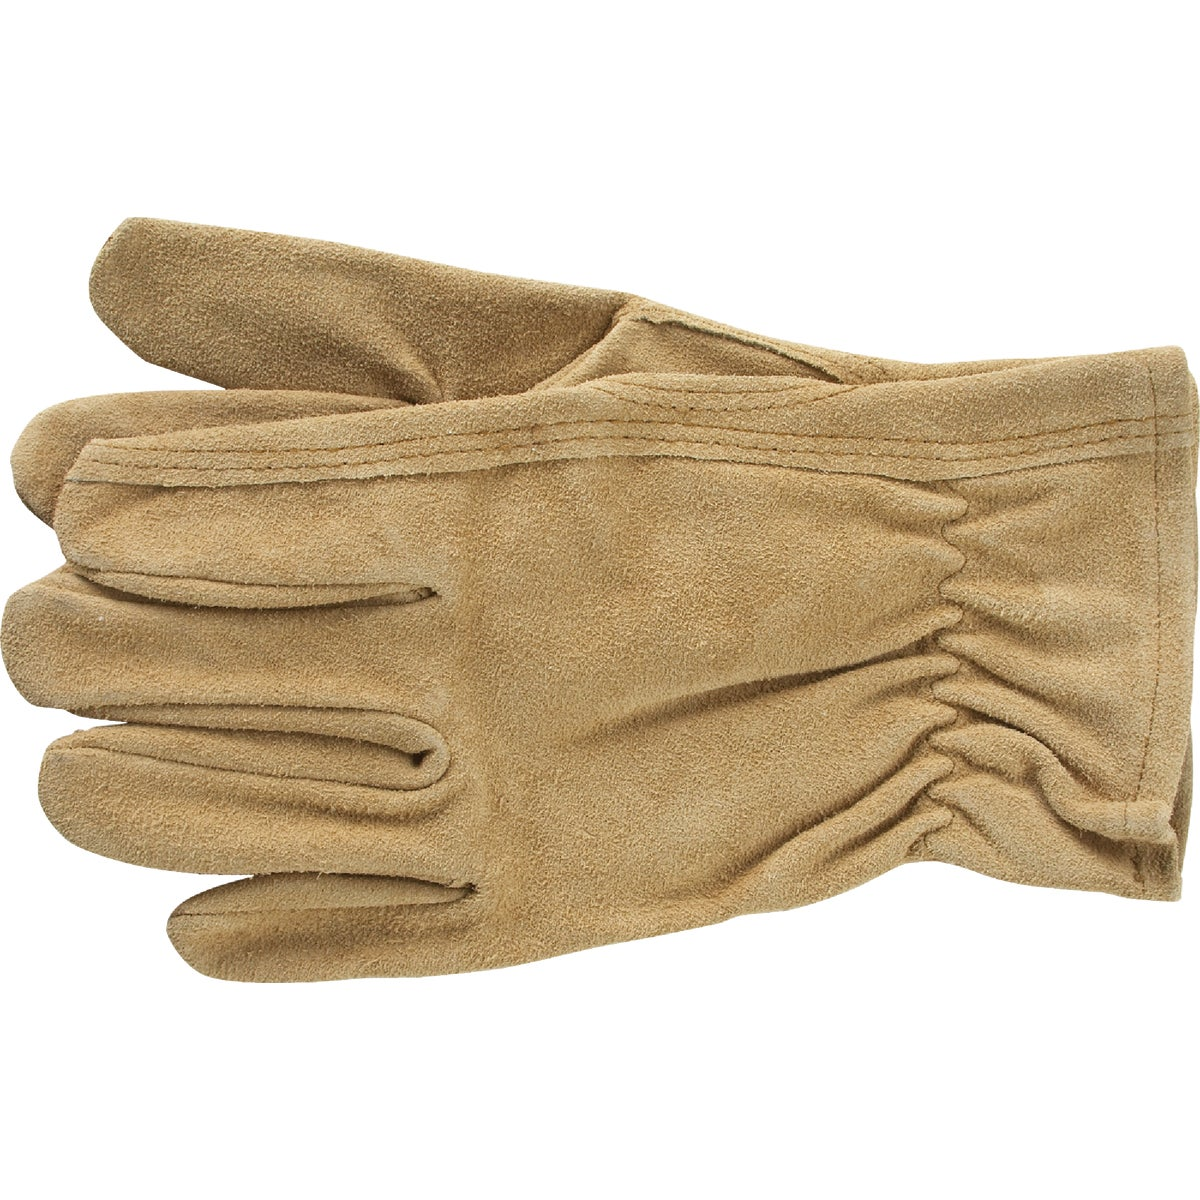 LRG SUEDE LEATHER GLOVE